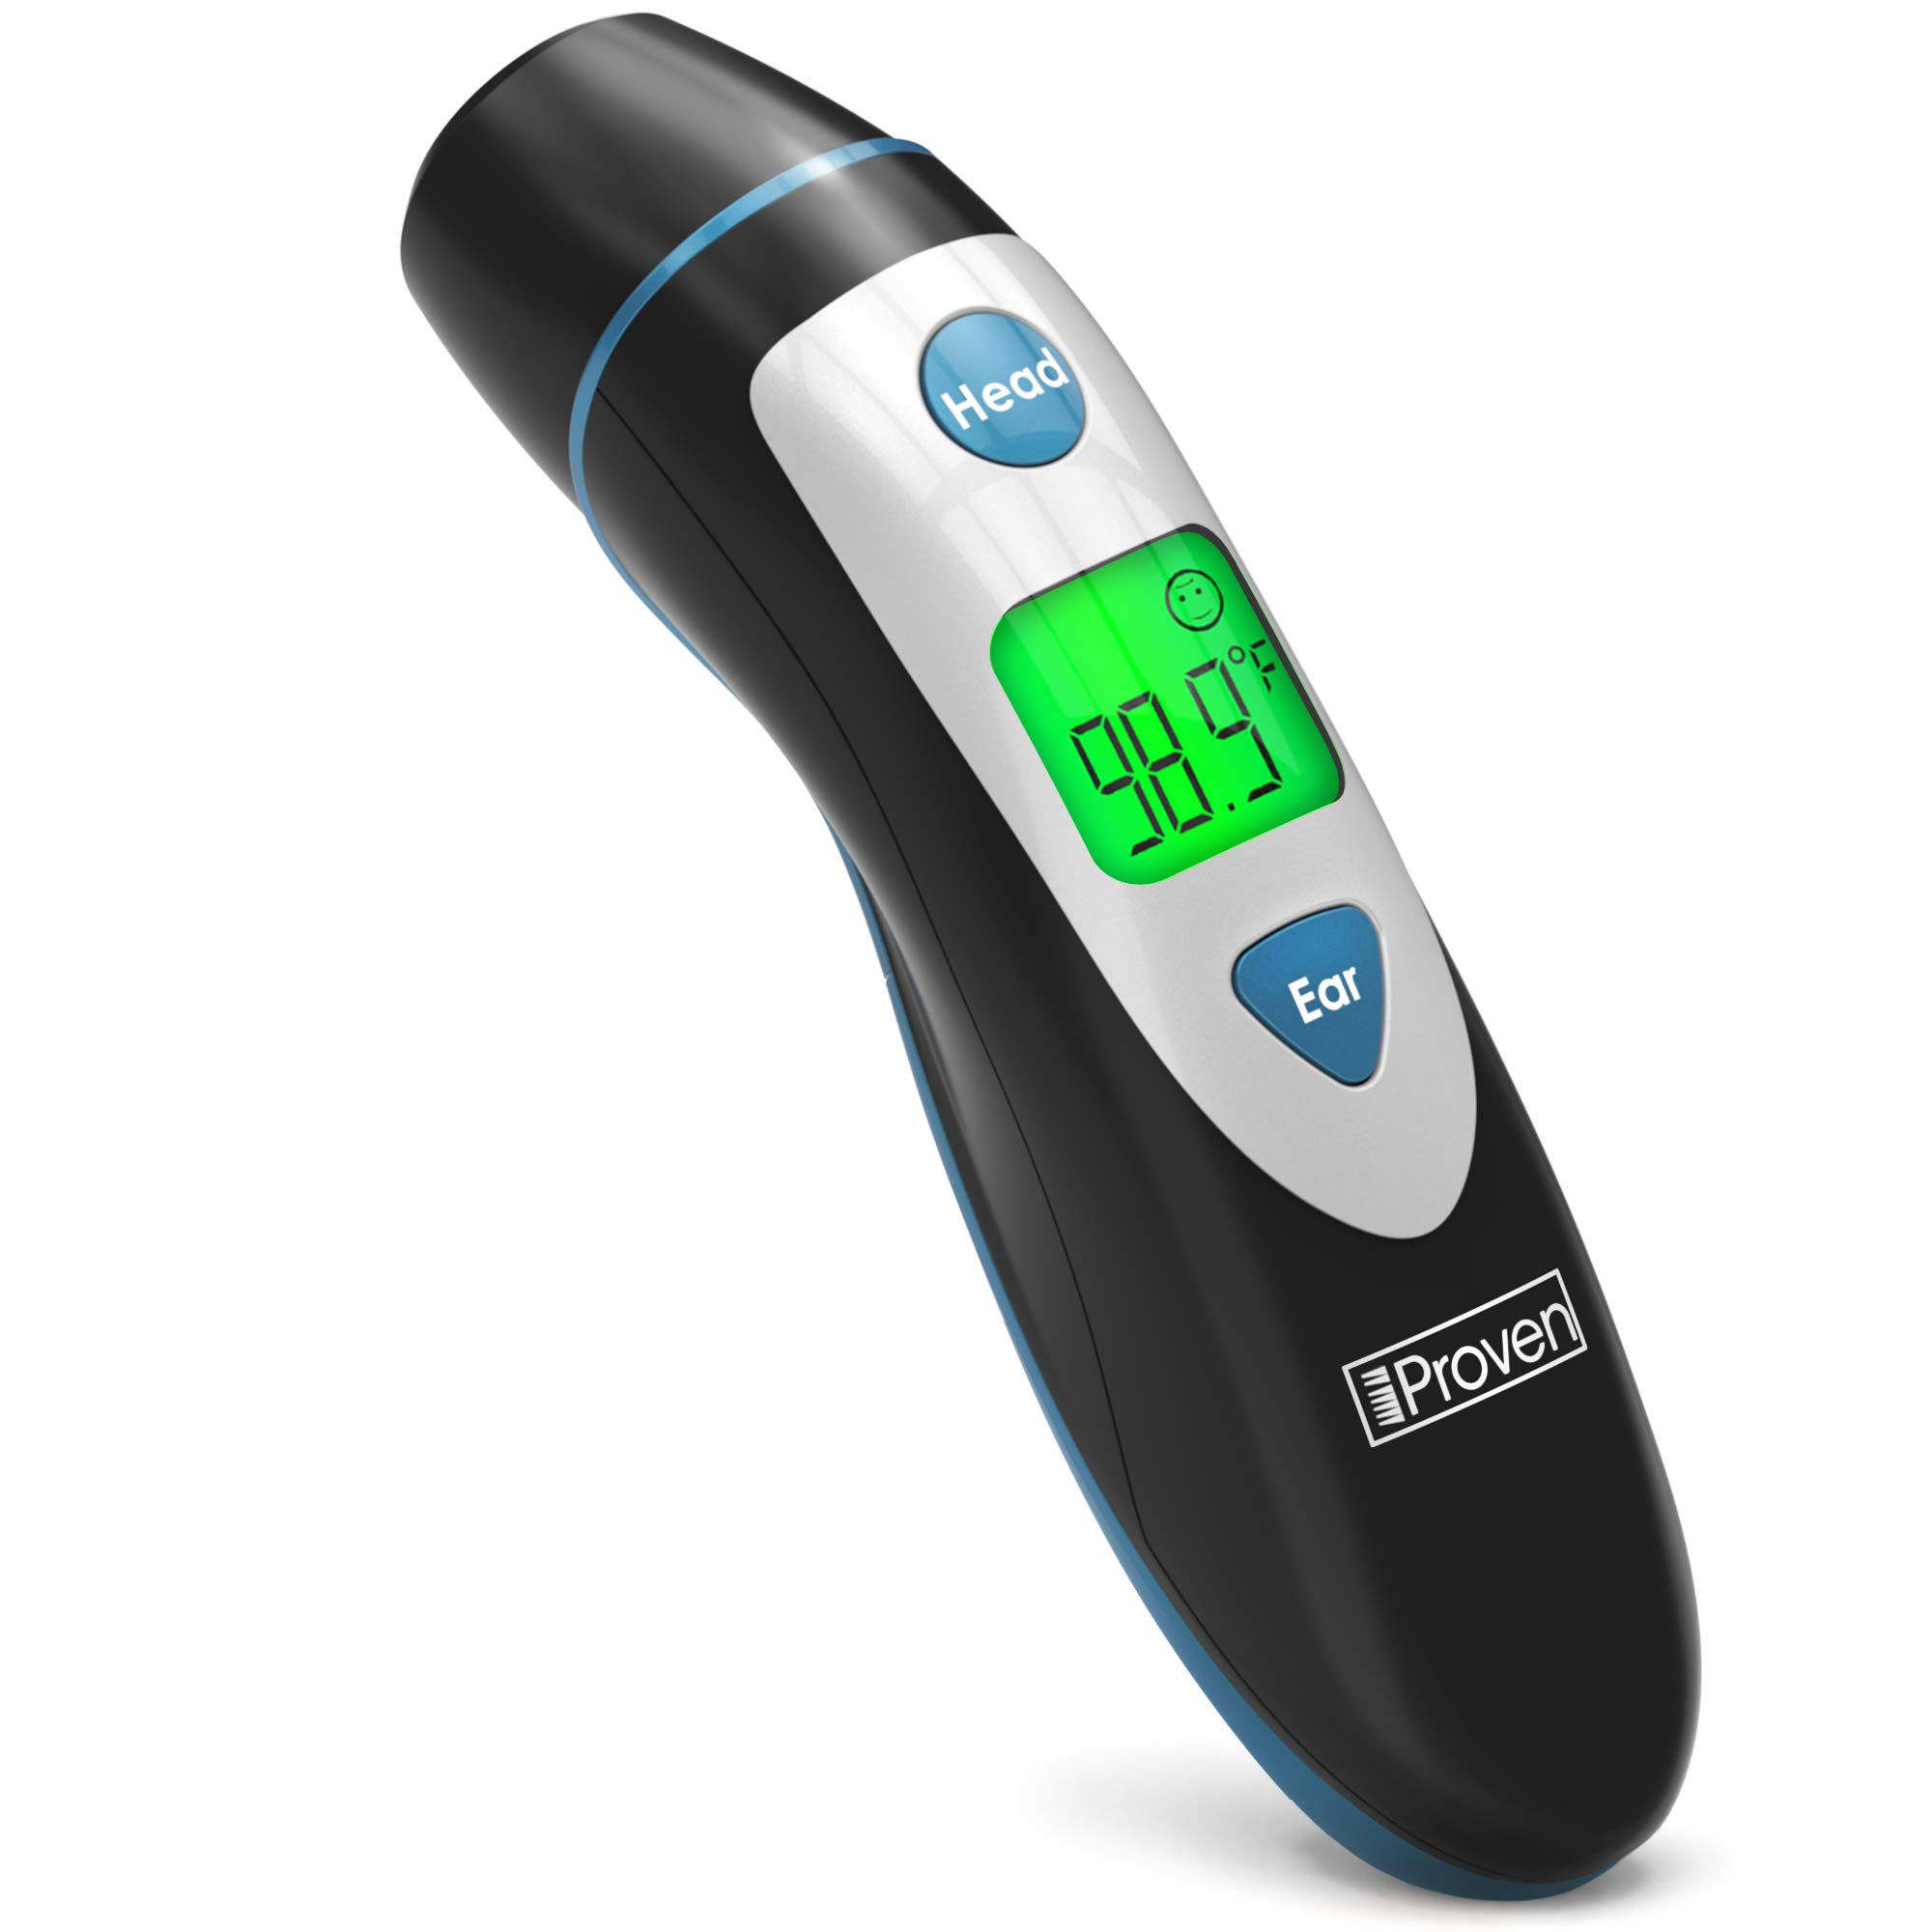 [New 2019 Model] iProven Thermometer for Fever - Forehead and Ear Thermometer - with Fever Alarm - Pouch and Batteries Included - Thermometer DMT-489Black by iProven